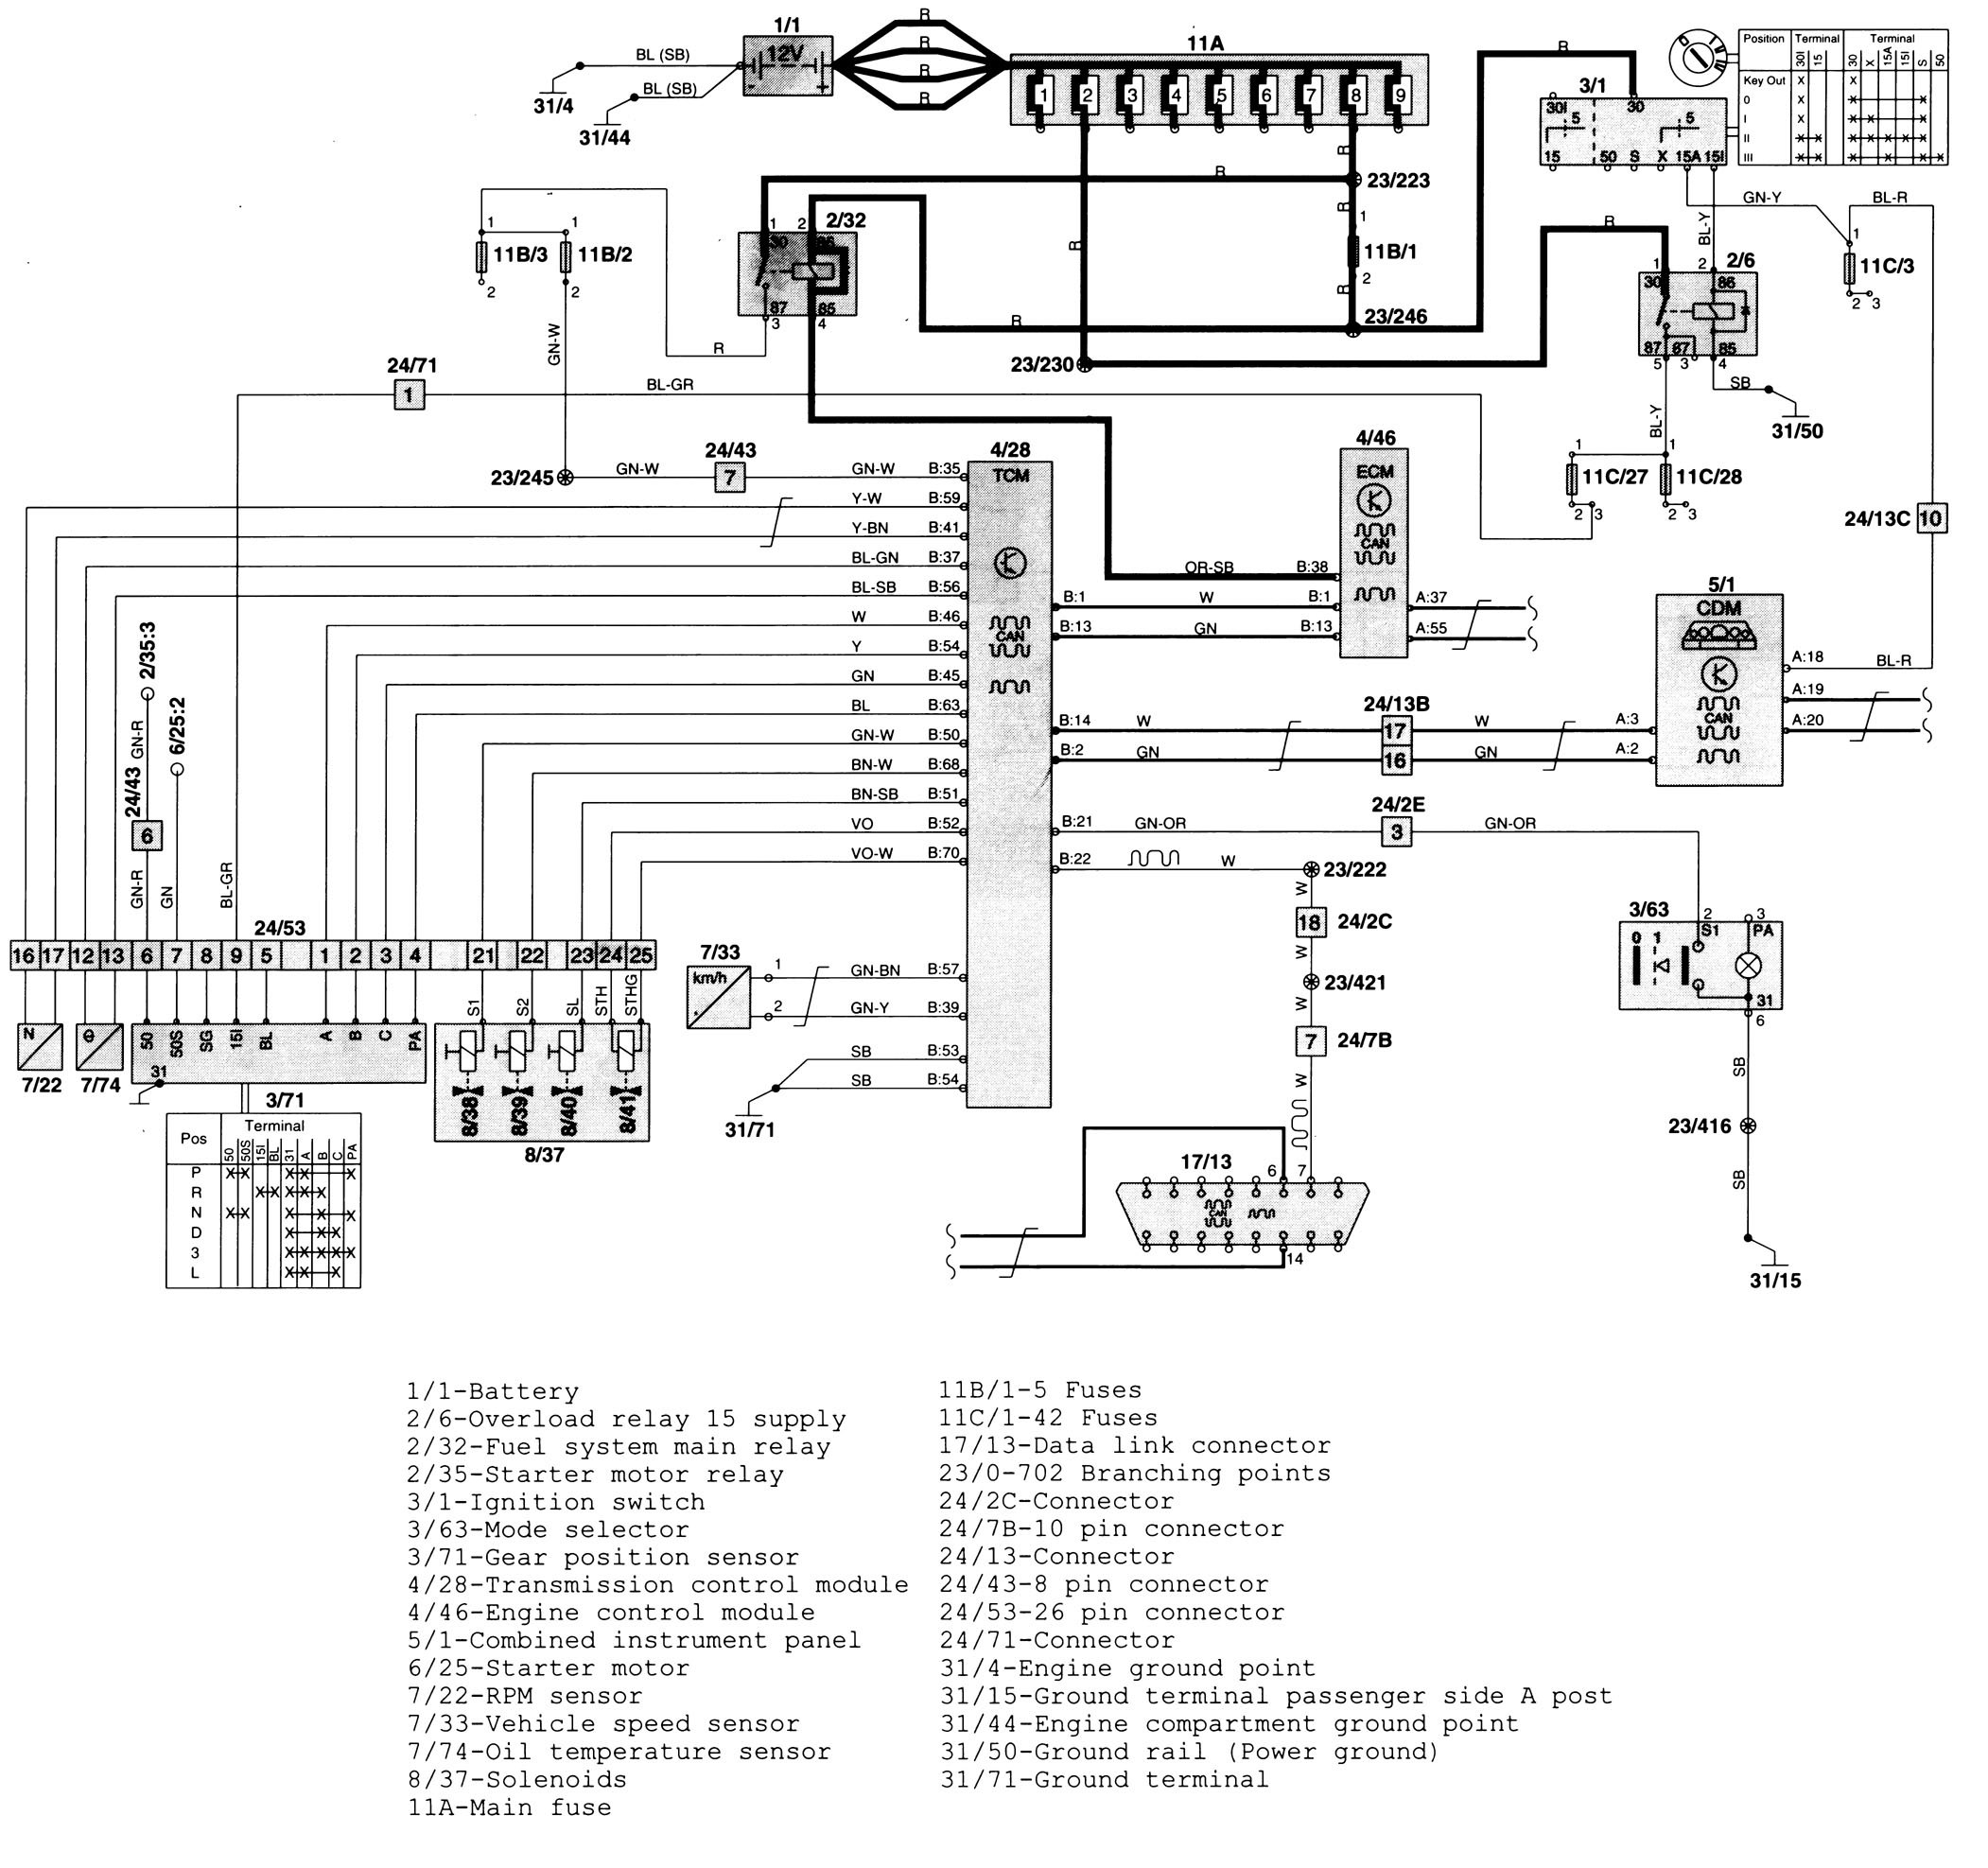 volvo c70 wiring diagram transmission controls 1999 volvo c70 (1999) wiring diagrams transmission controls transmission wiring diagrams at bakdesigns.co